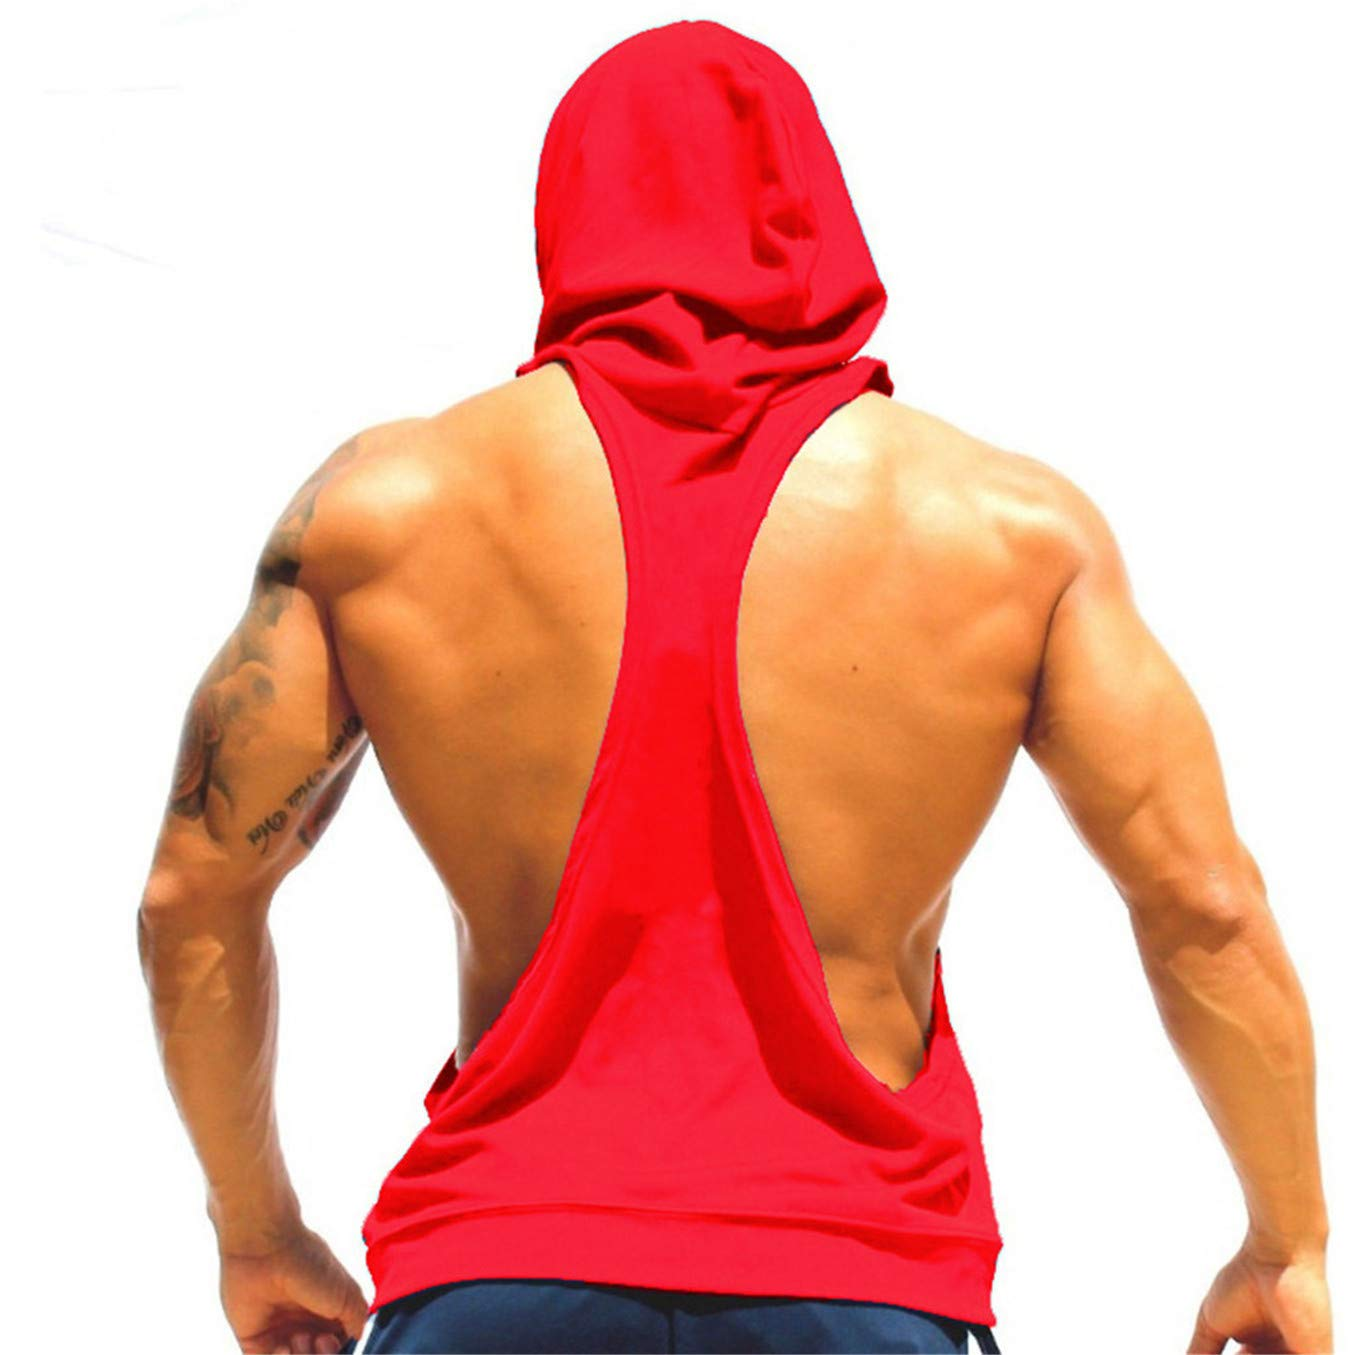 TIFENNY Men Fashion Hooded Vest Sling Running Yoga Gym Fitness Sport Shorts Breathable Sleeveless Tops Red